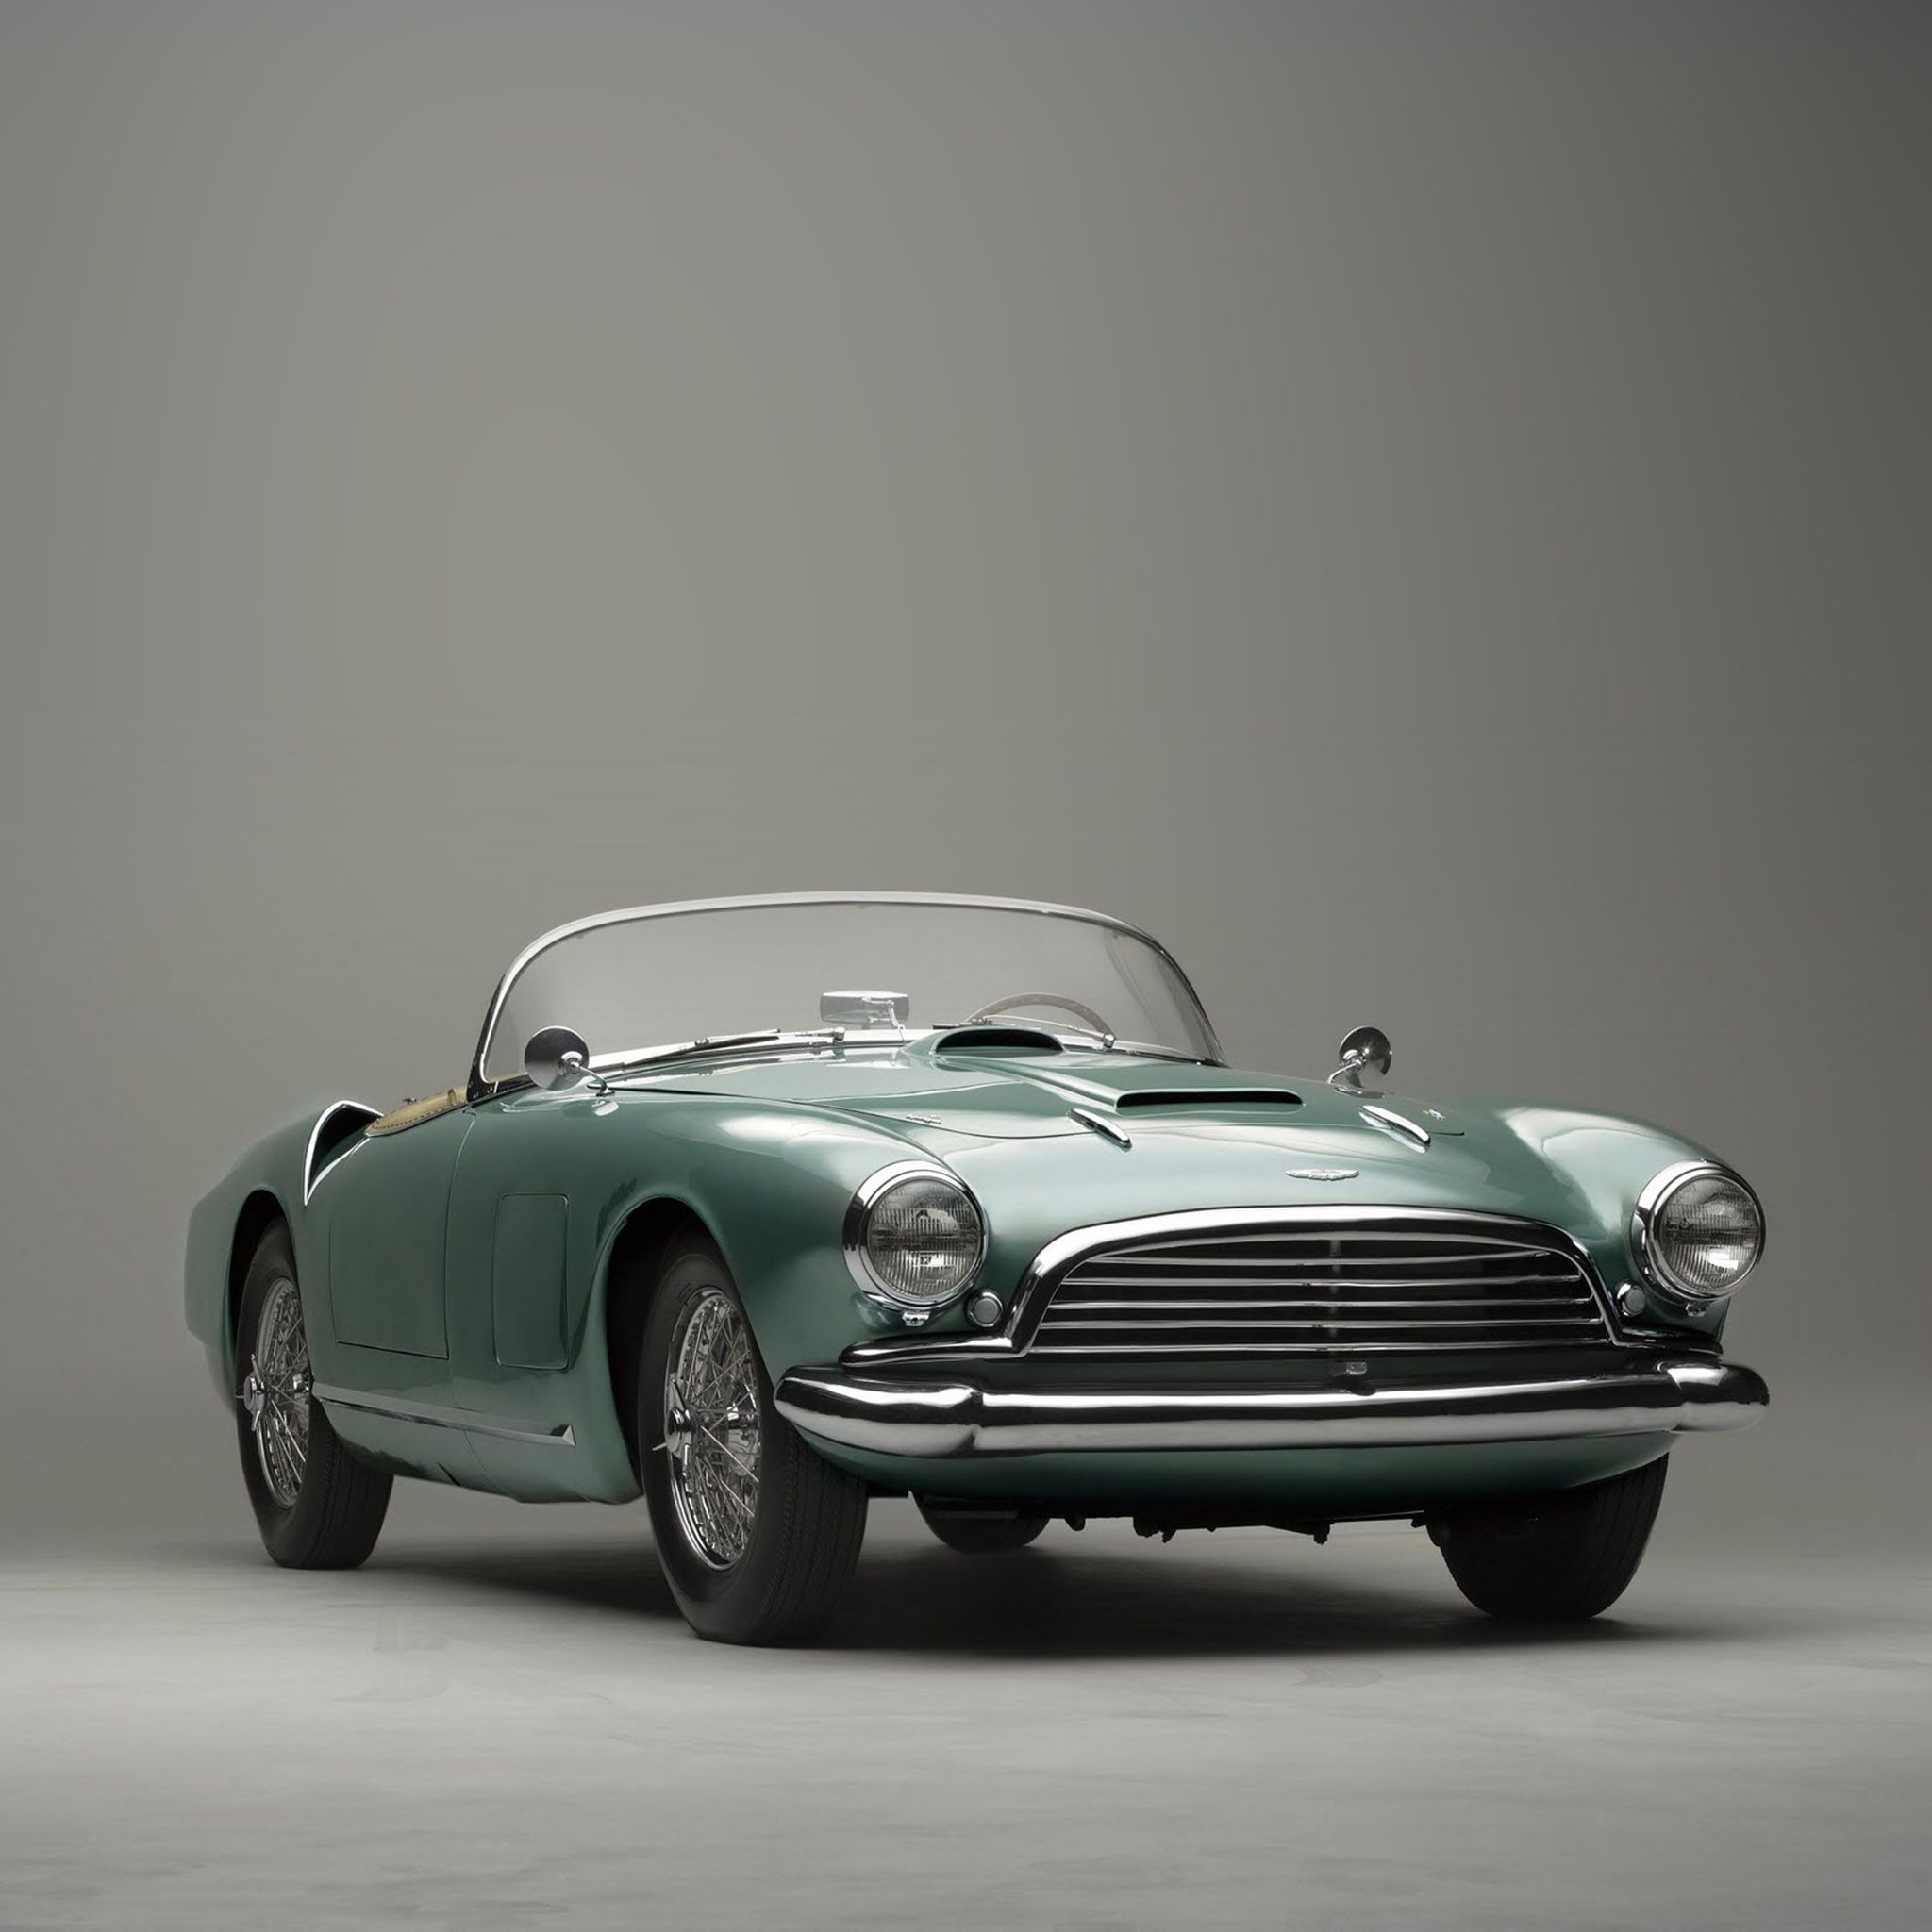 Aston martin d82 - Tap to see more of the best vintage cars ...